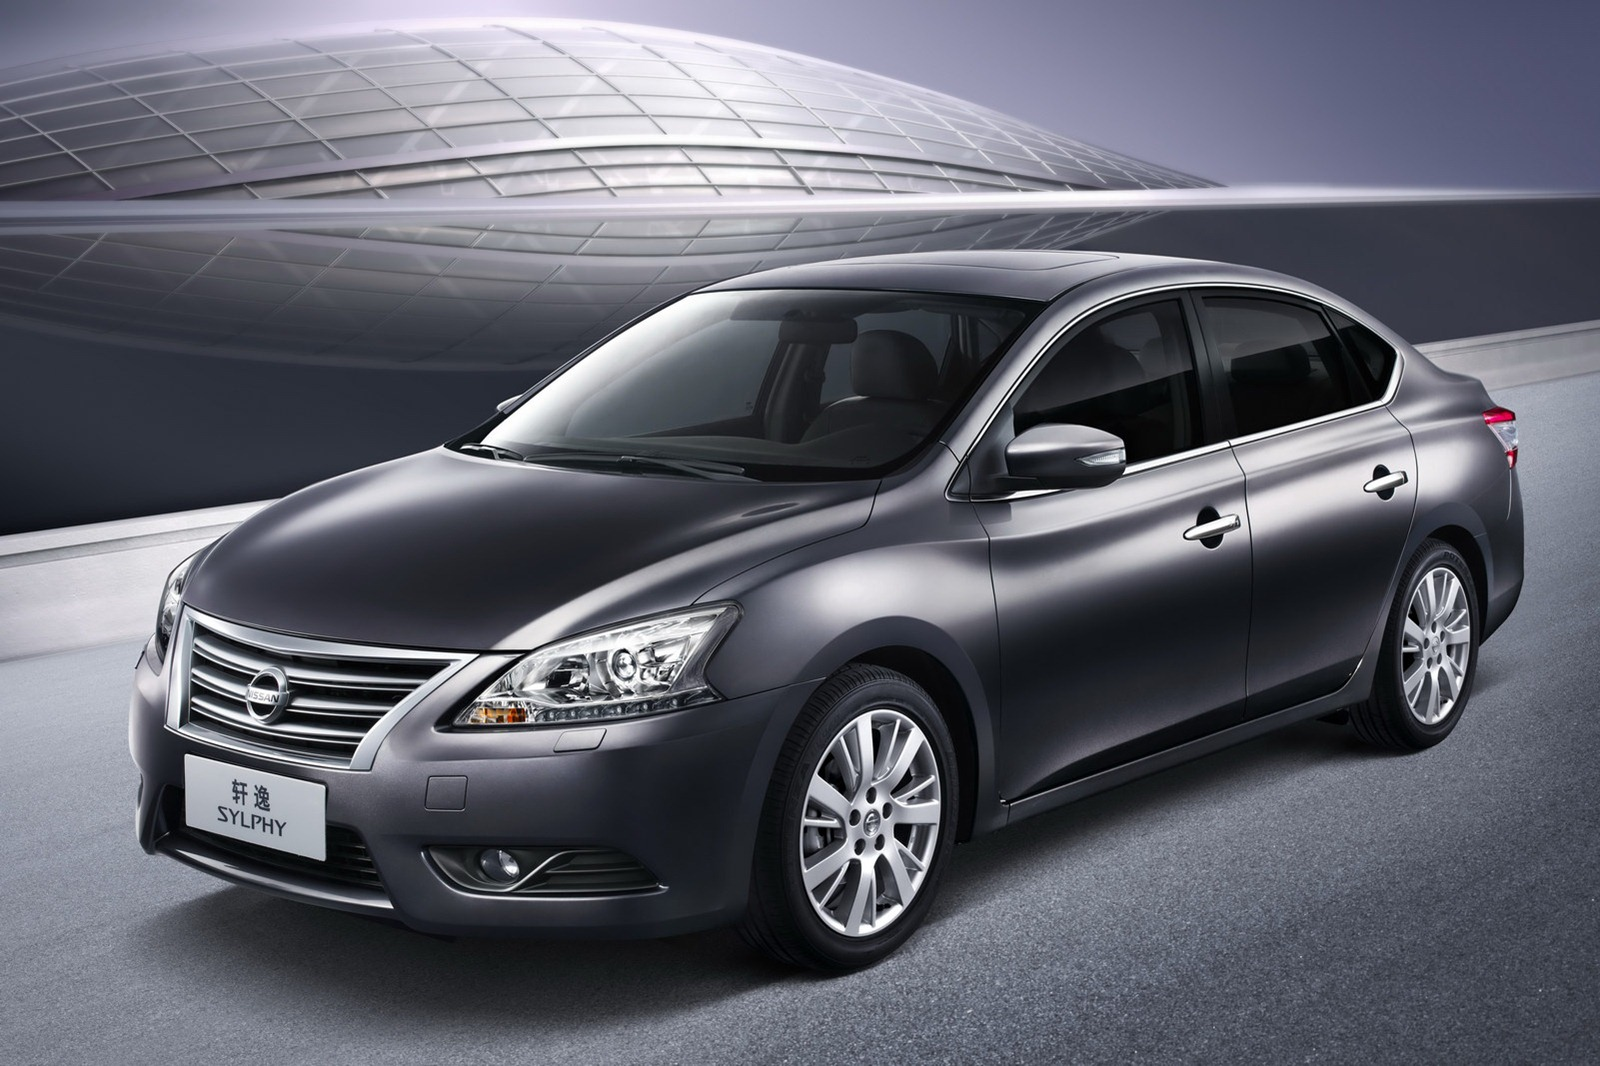 2013 Nissan Sylphy Saloon 2013 Nissan Sylphy Saloon   Exclusively for Smart Dudes